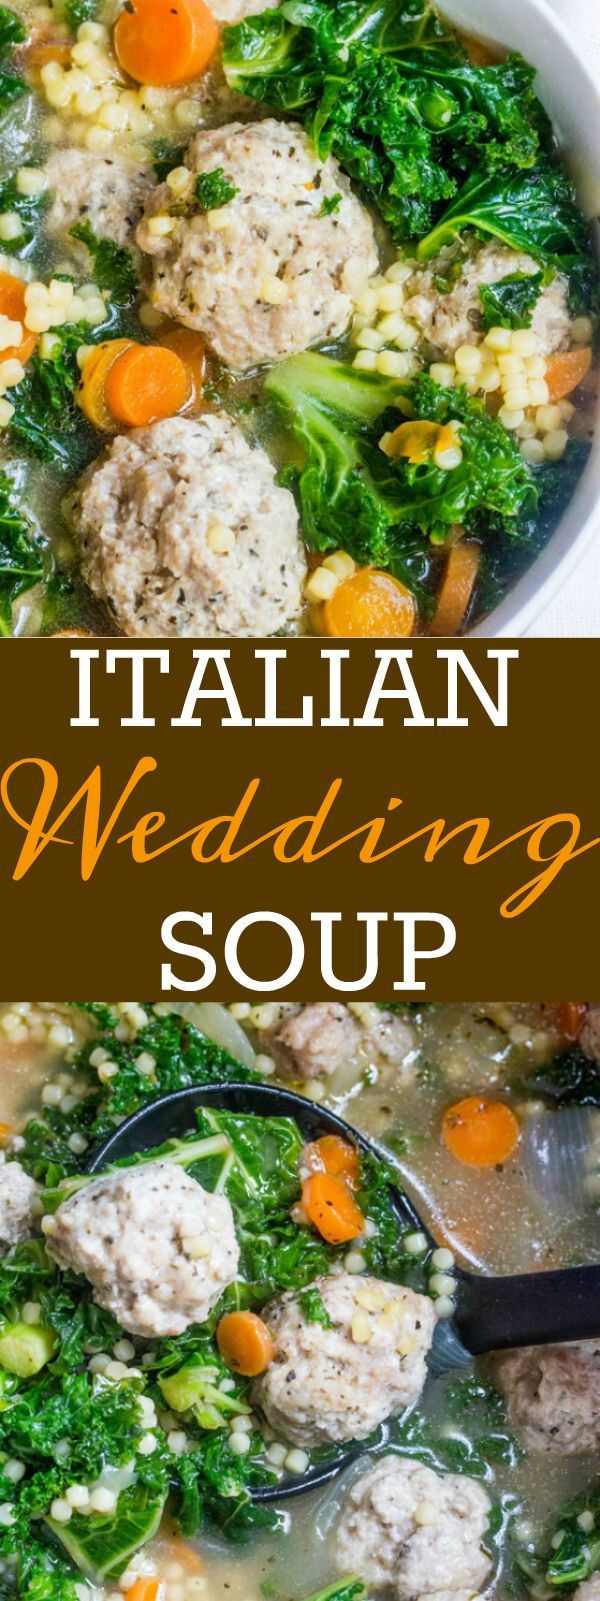 Full of veggies, meatballs and pasta this Italian Wedding Soup is a comforting, delicious dinner that is perfect for any night of the week!